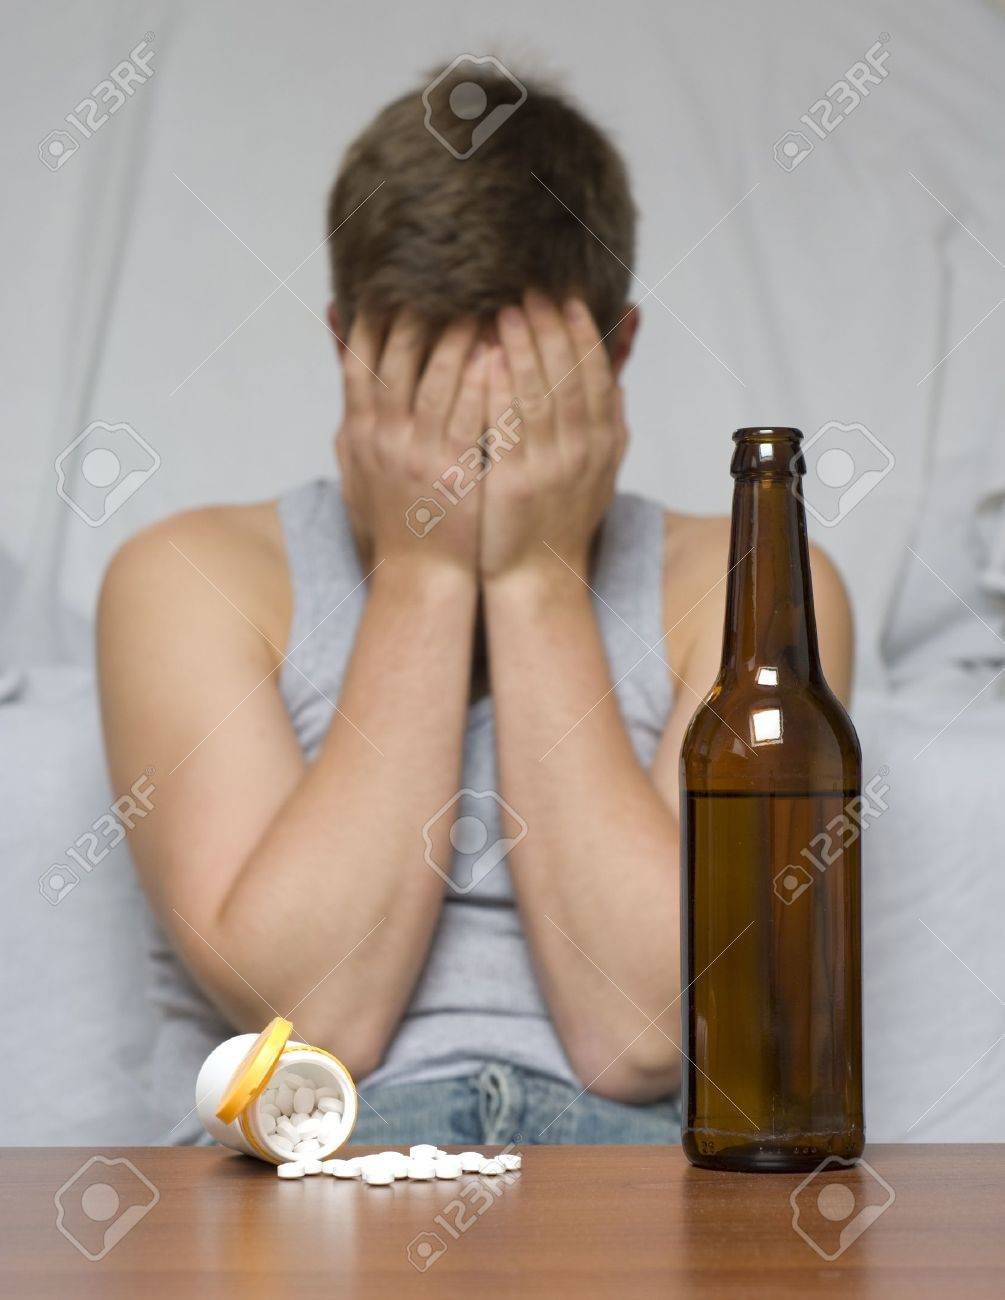 Beer bottle and drugs on the table. Depressed and lonely man. Stock Photo - 15628946